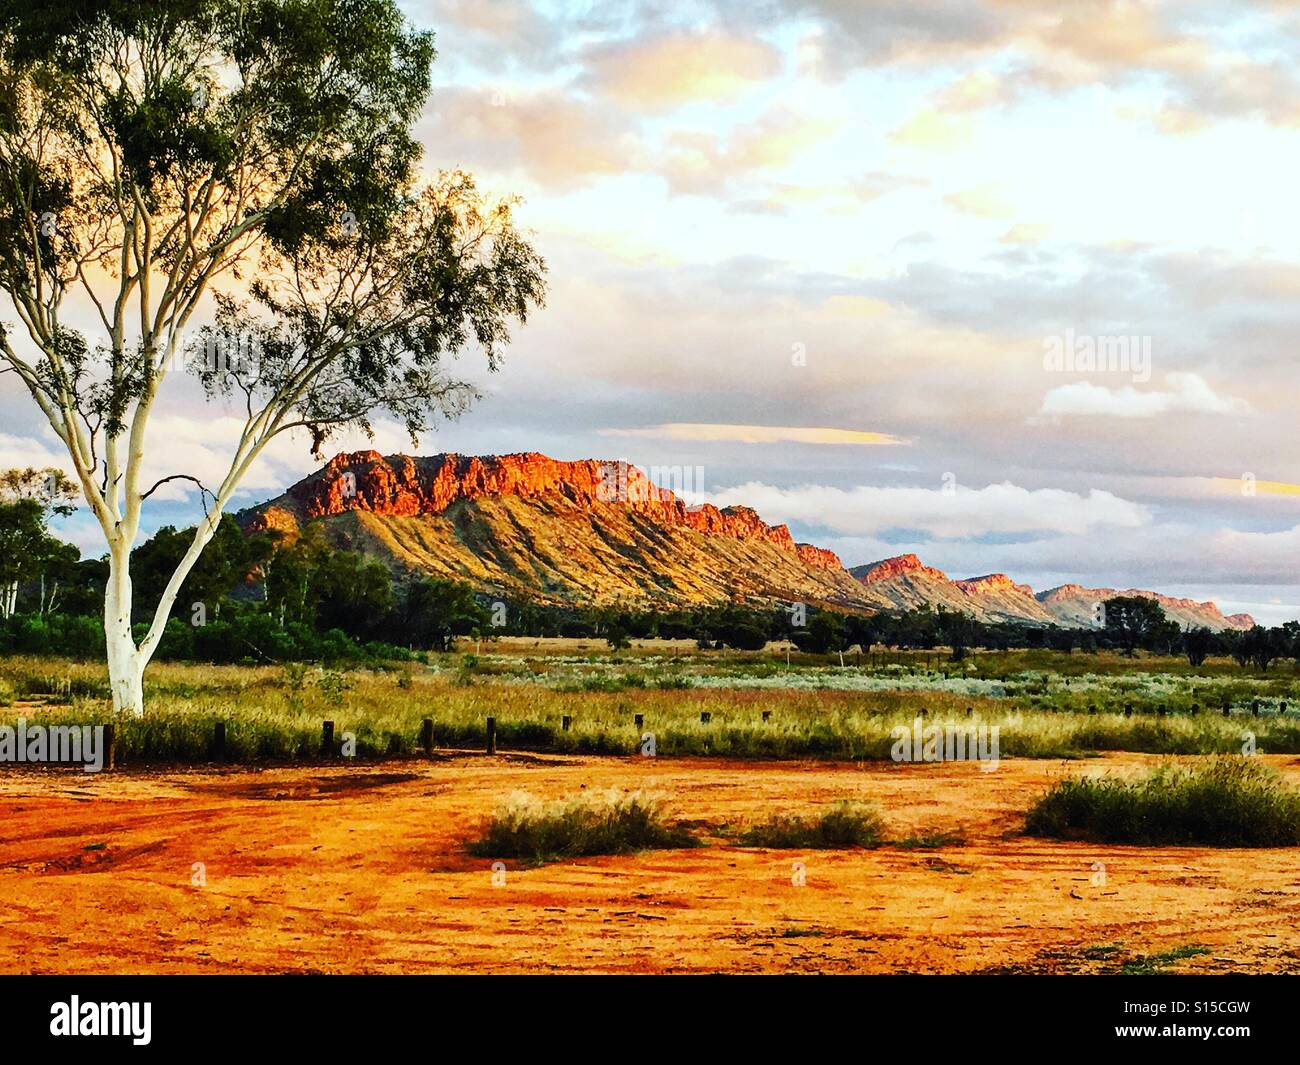 Outback Australia Macdonald ranges in Northern Territory - Stock Image